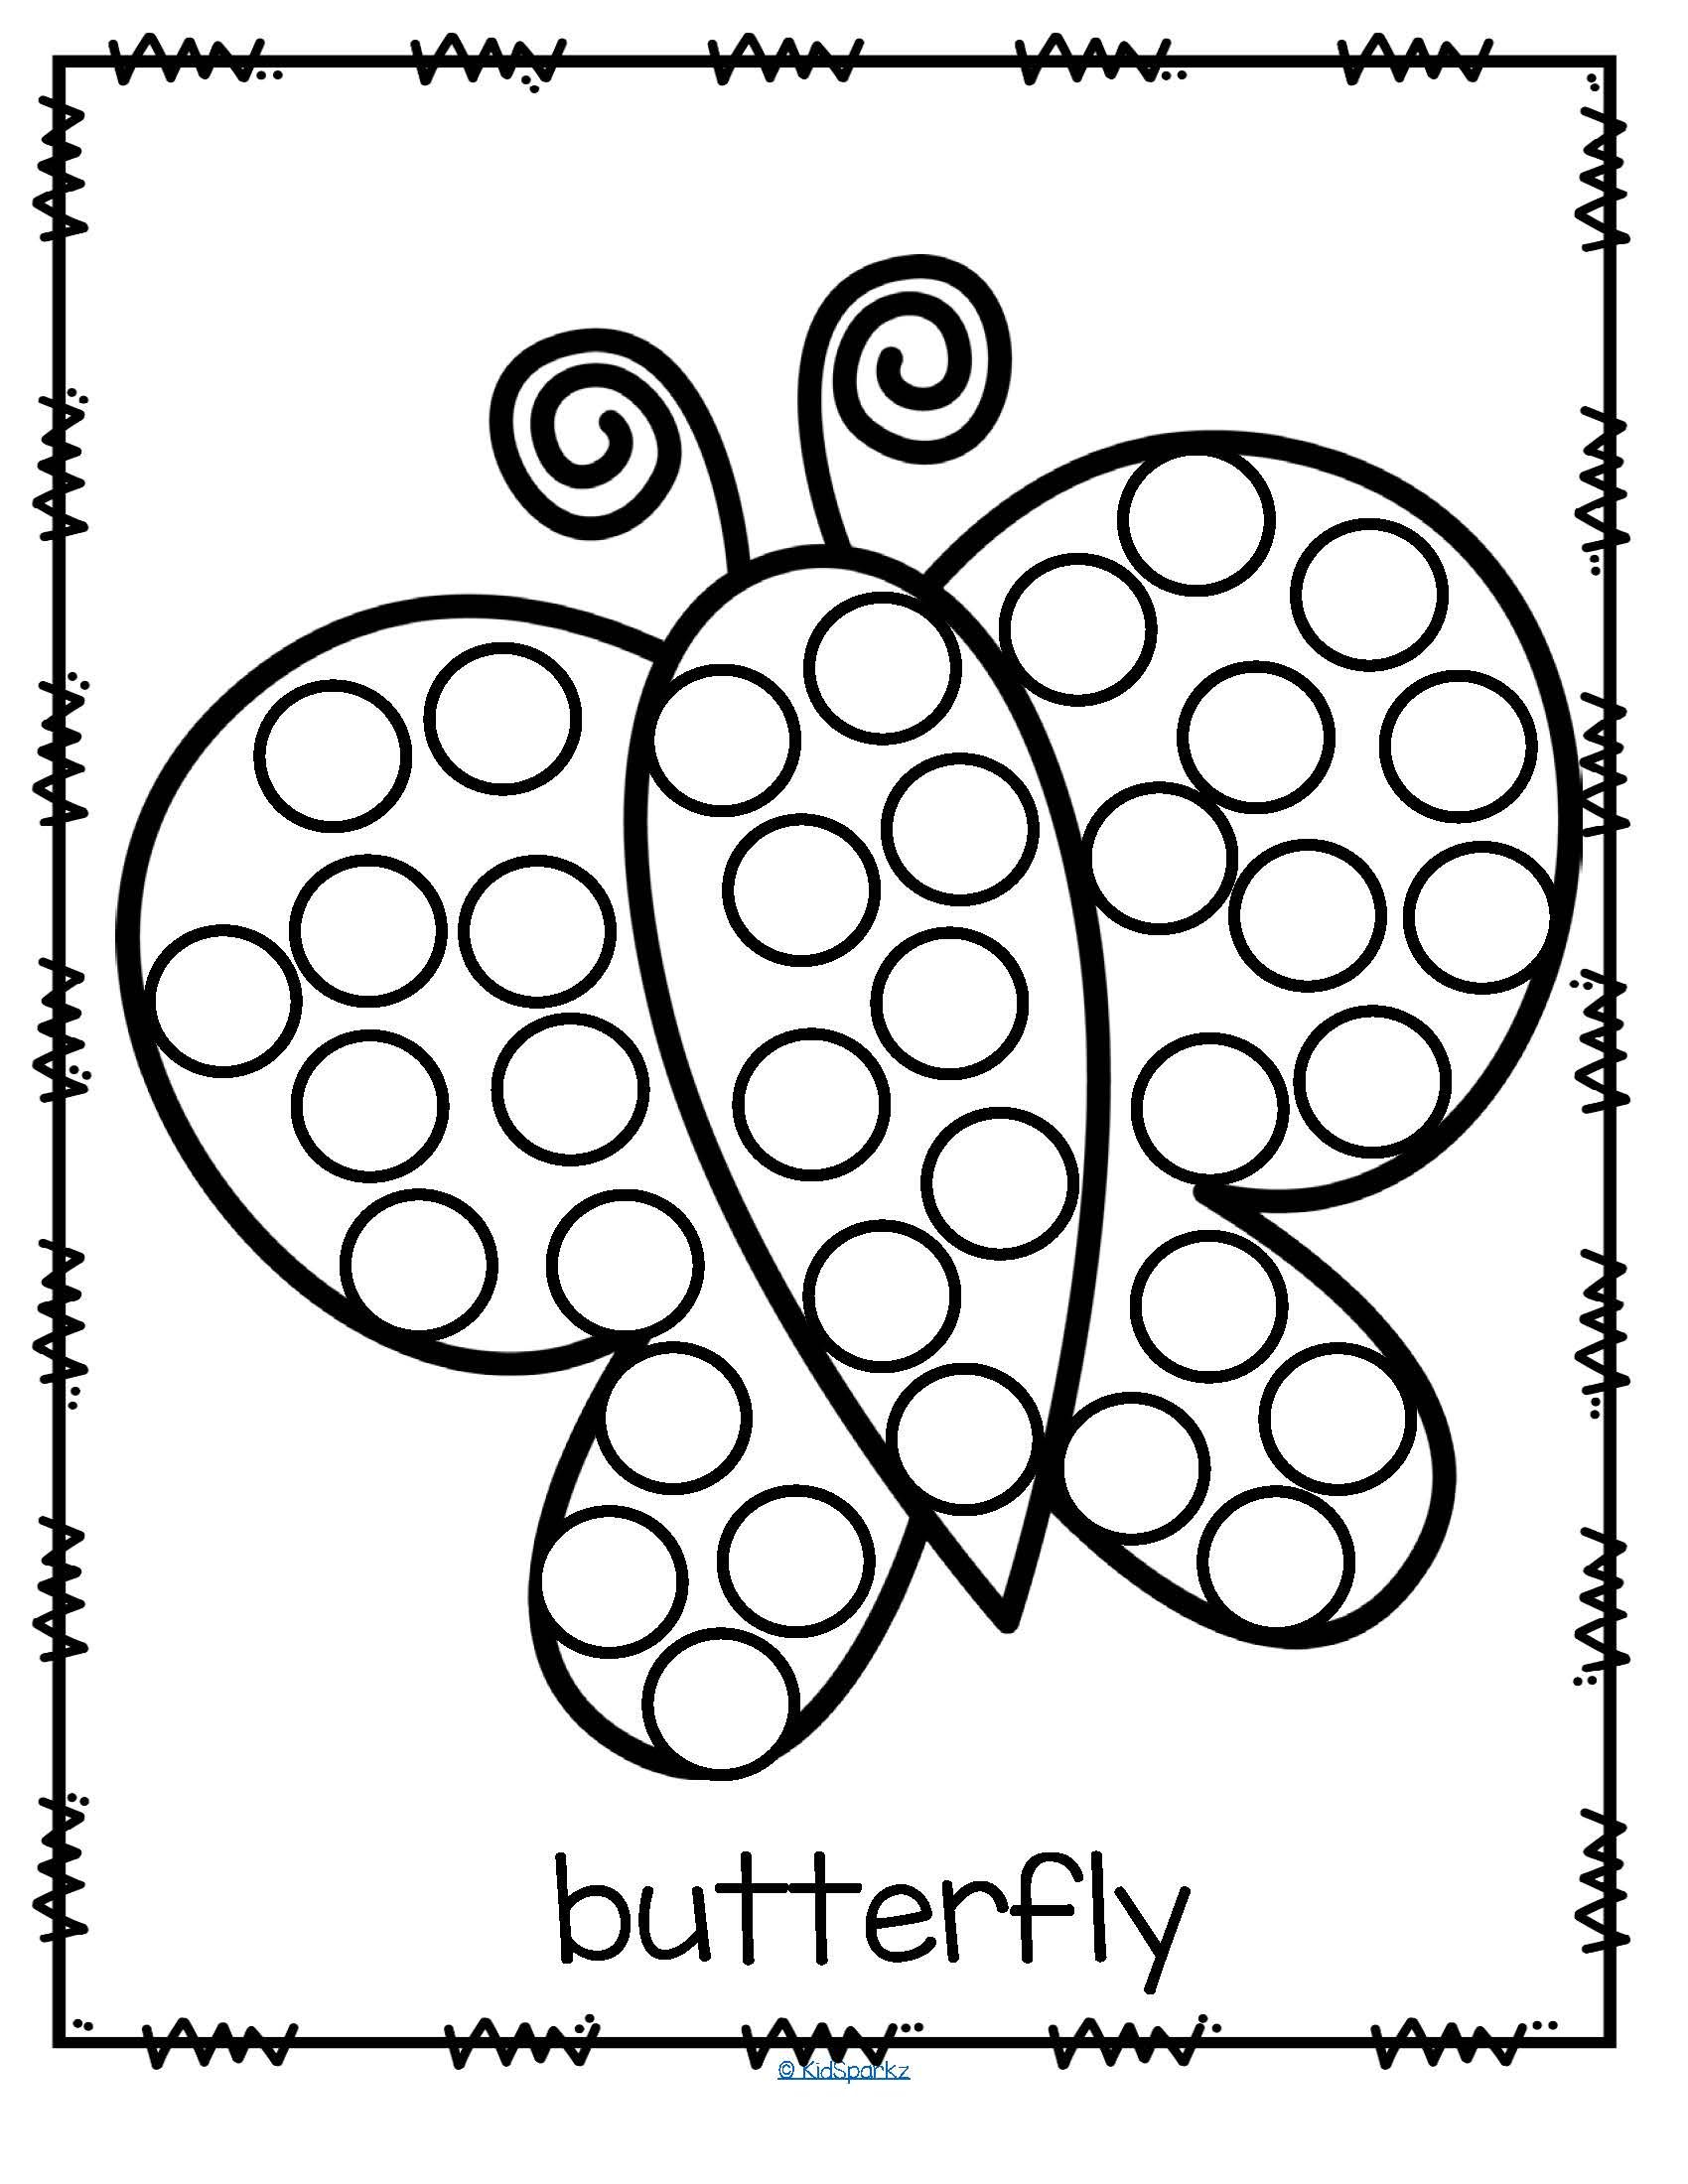 21 Bingo Marker Coloring Pages Collection - Coloring Sheets